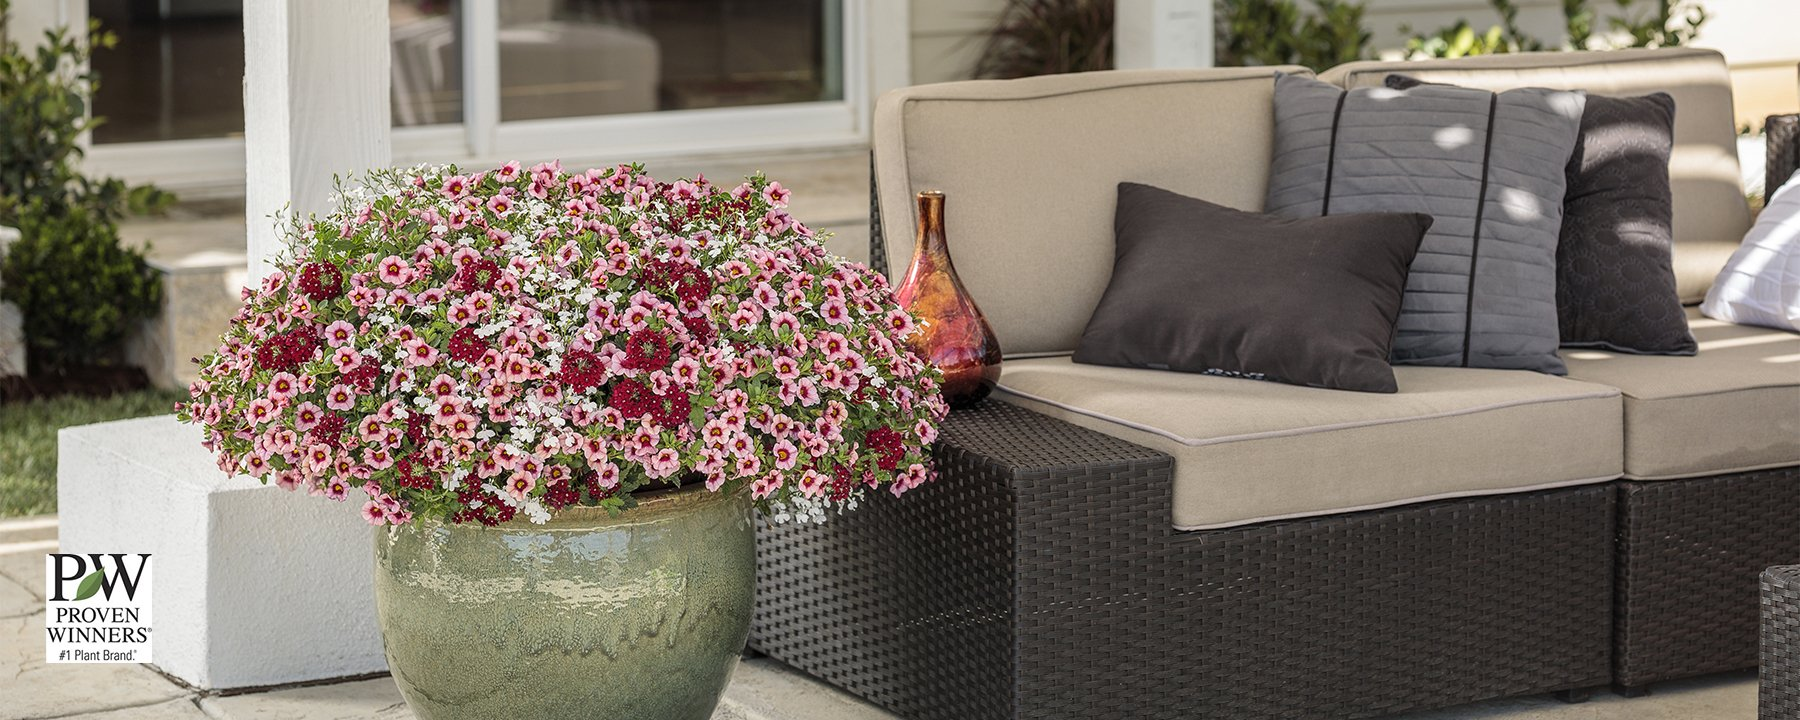 It's time to live outdoors with Flowerland